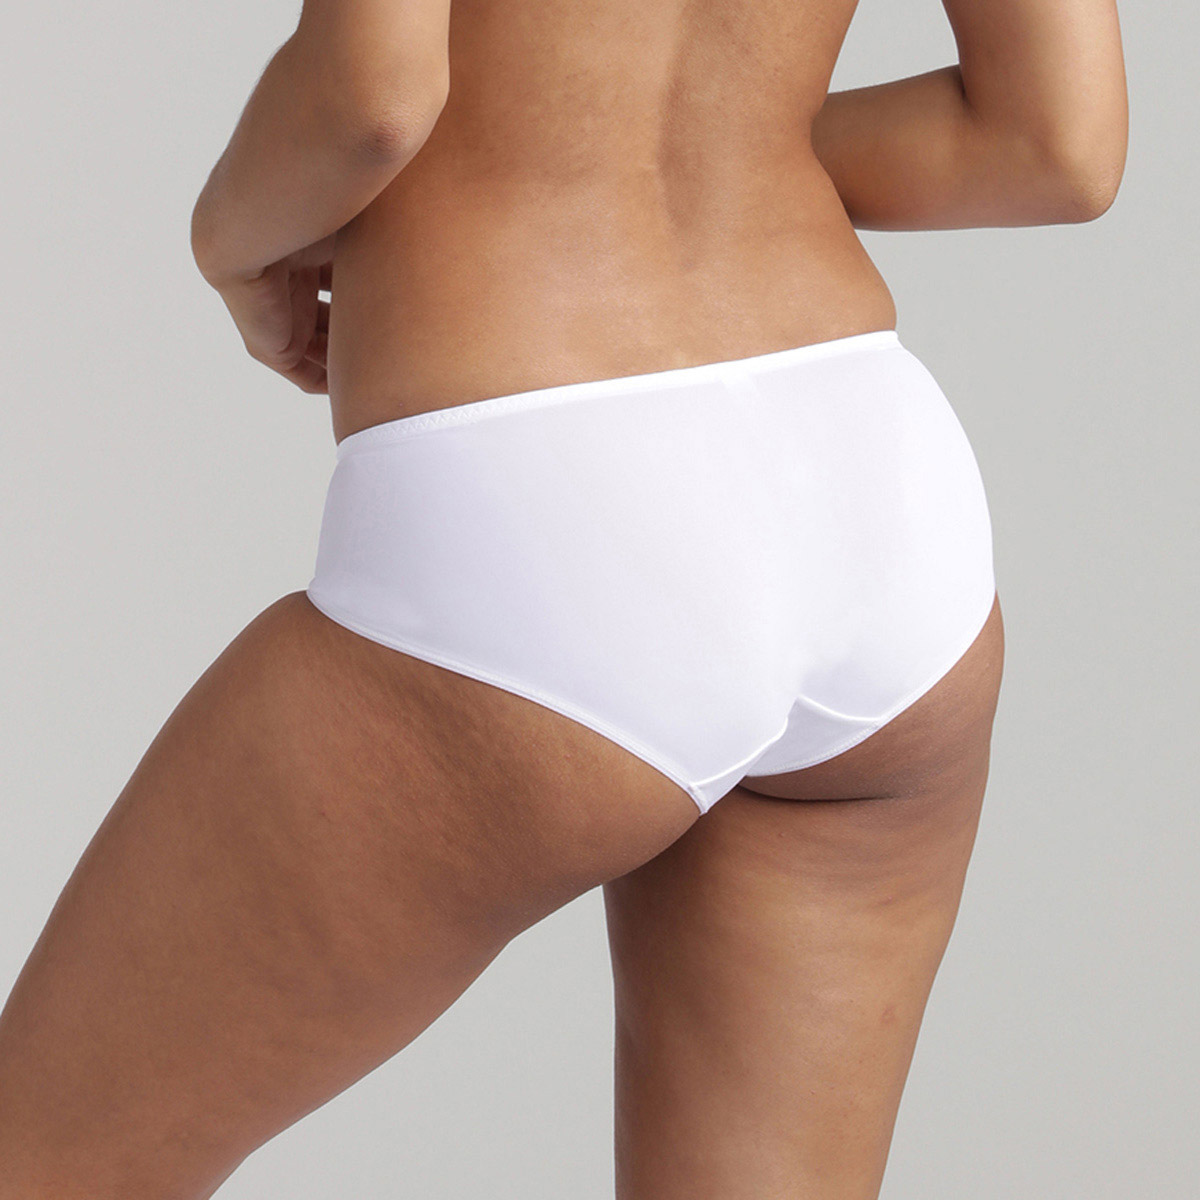 Midi knickers in white Essential Elegance Embroidery, , PLAYTEX